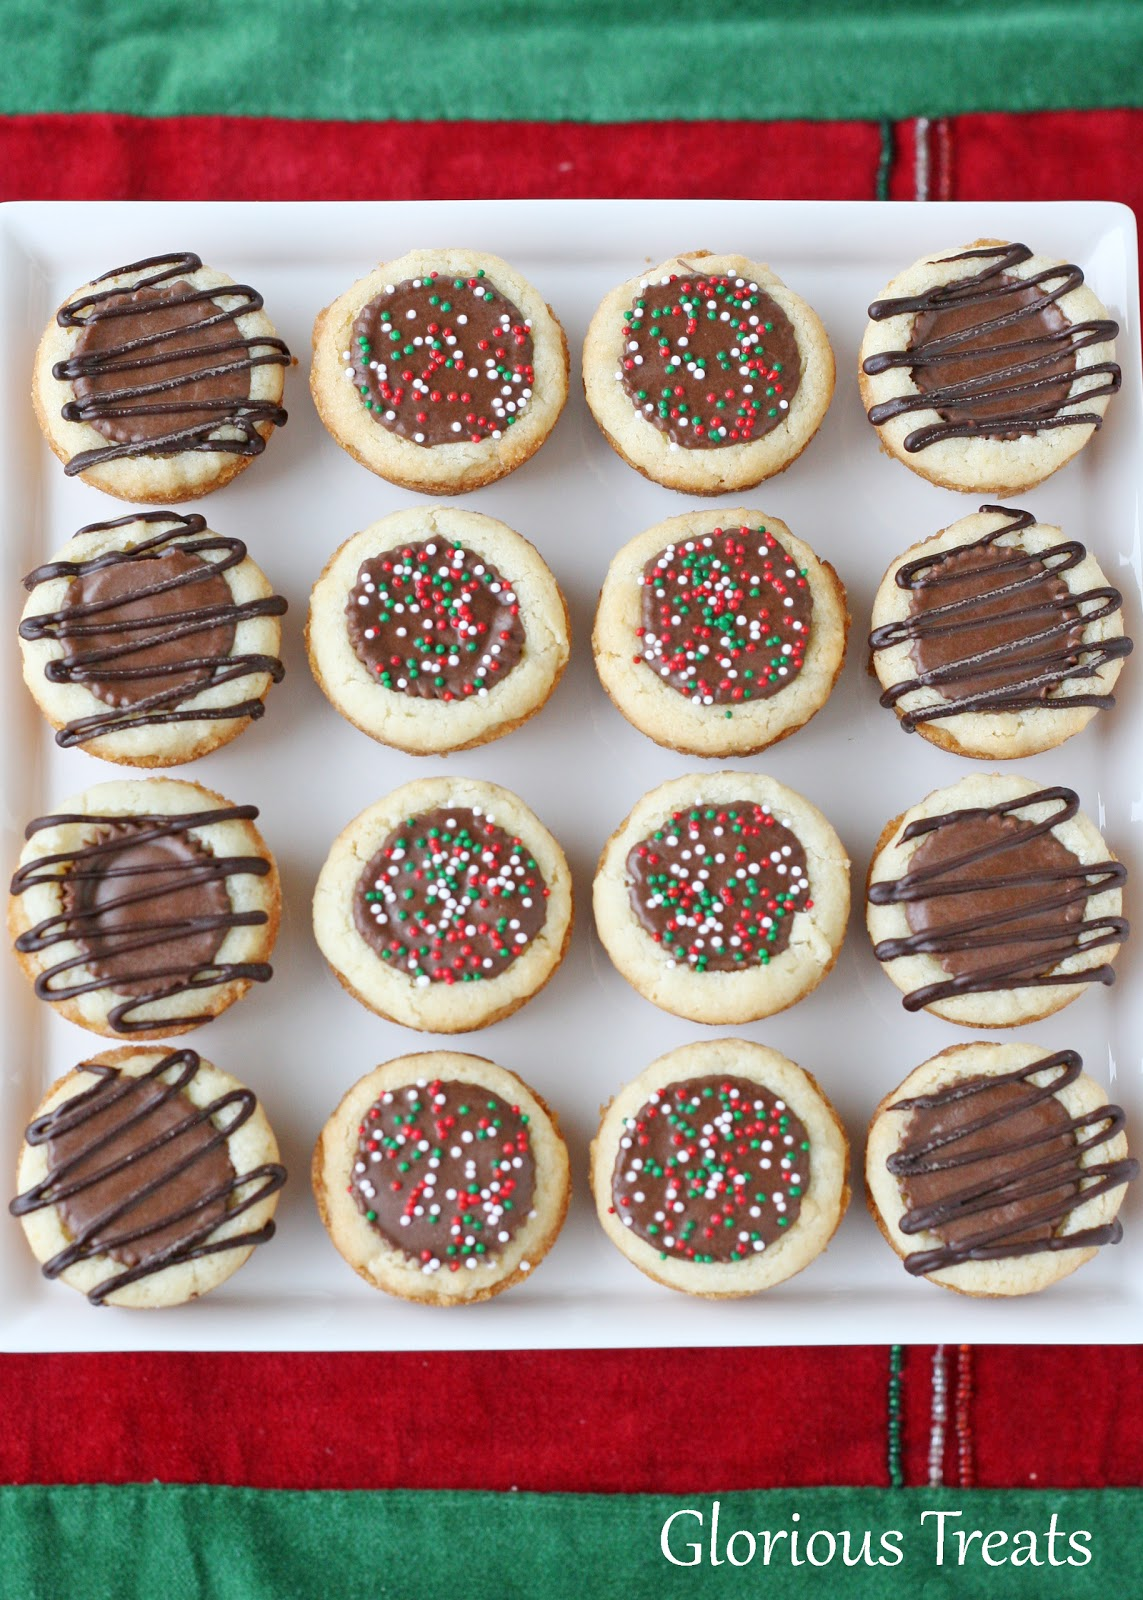 ... butter treats peanut butter cup cookies peanut butter cup cookies 2